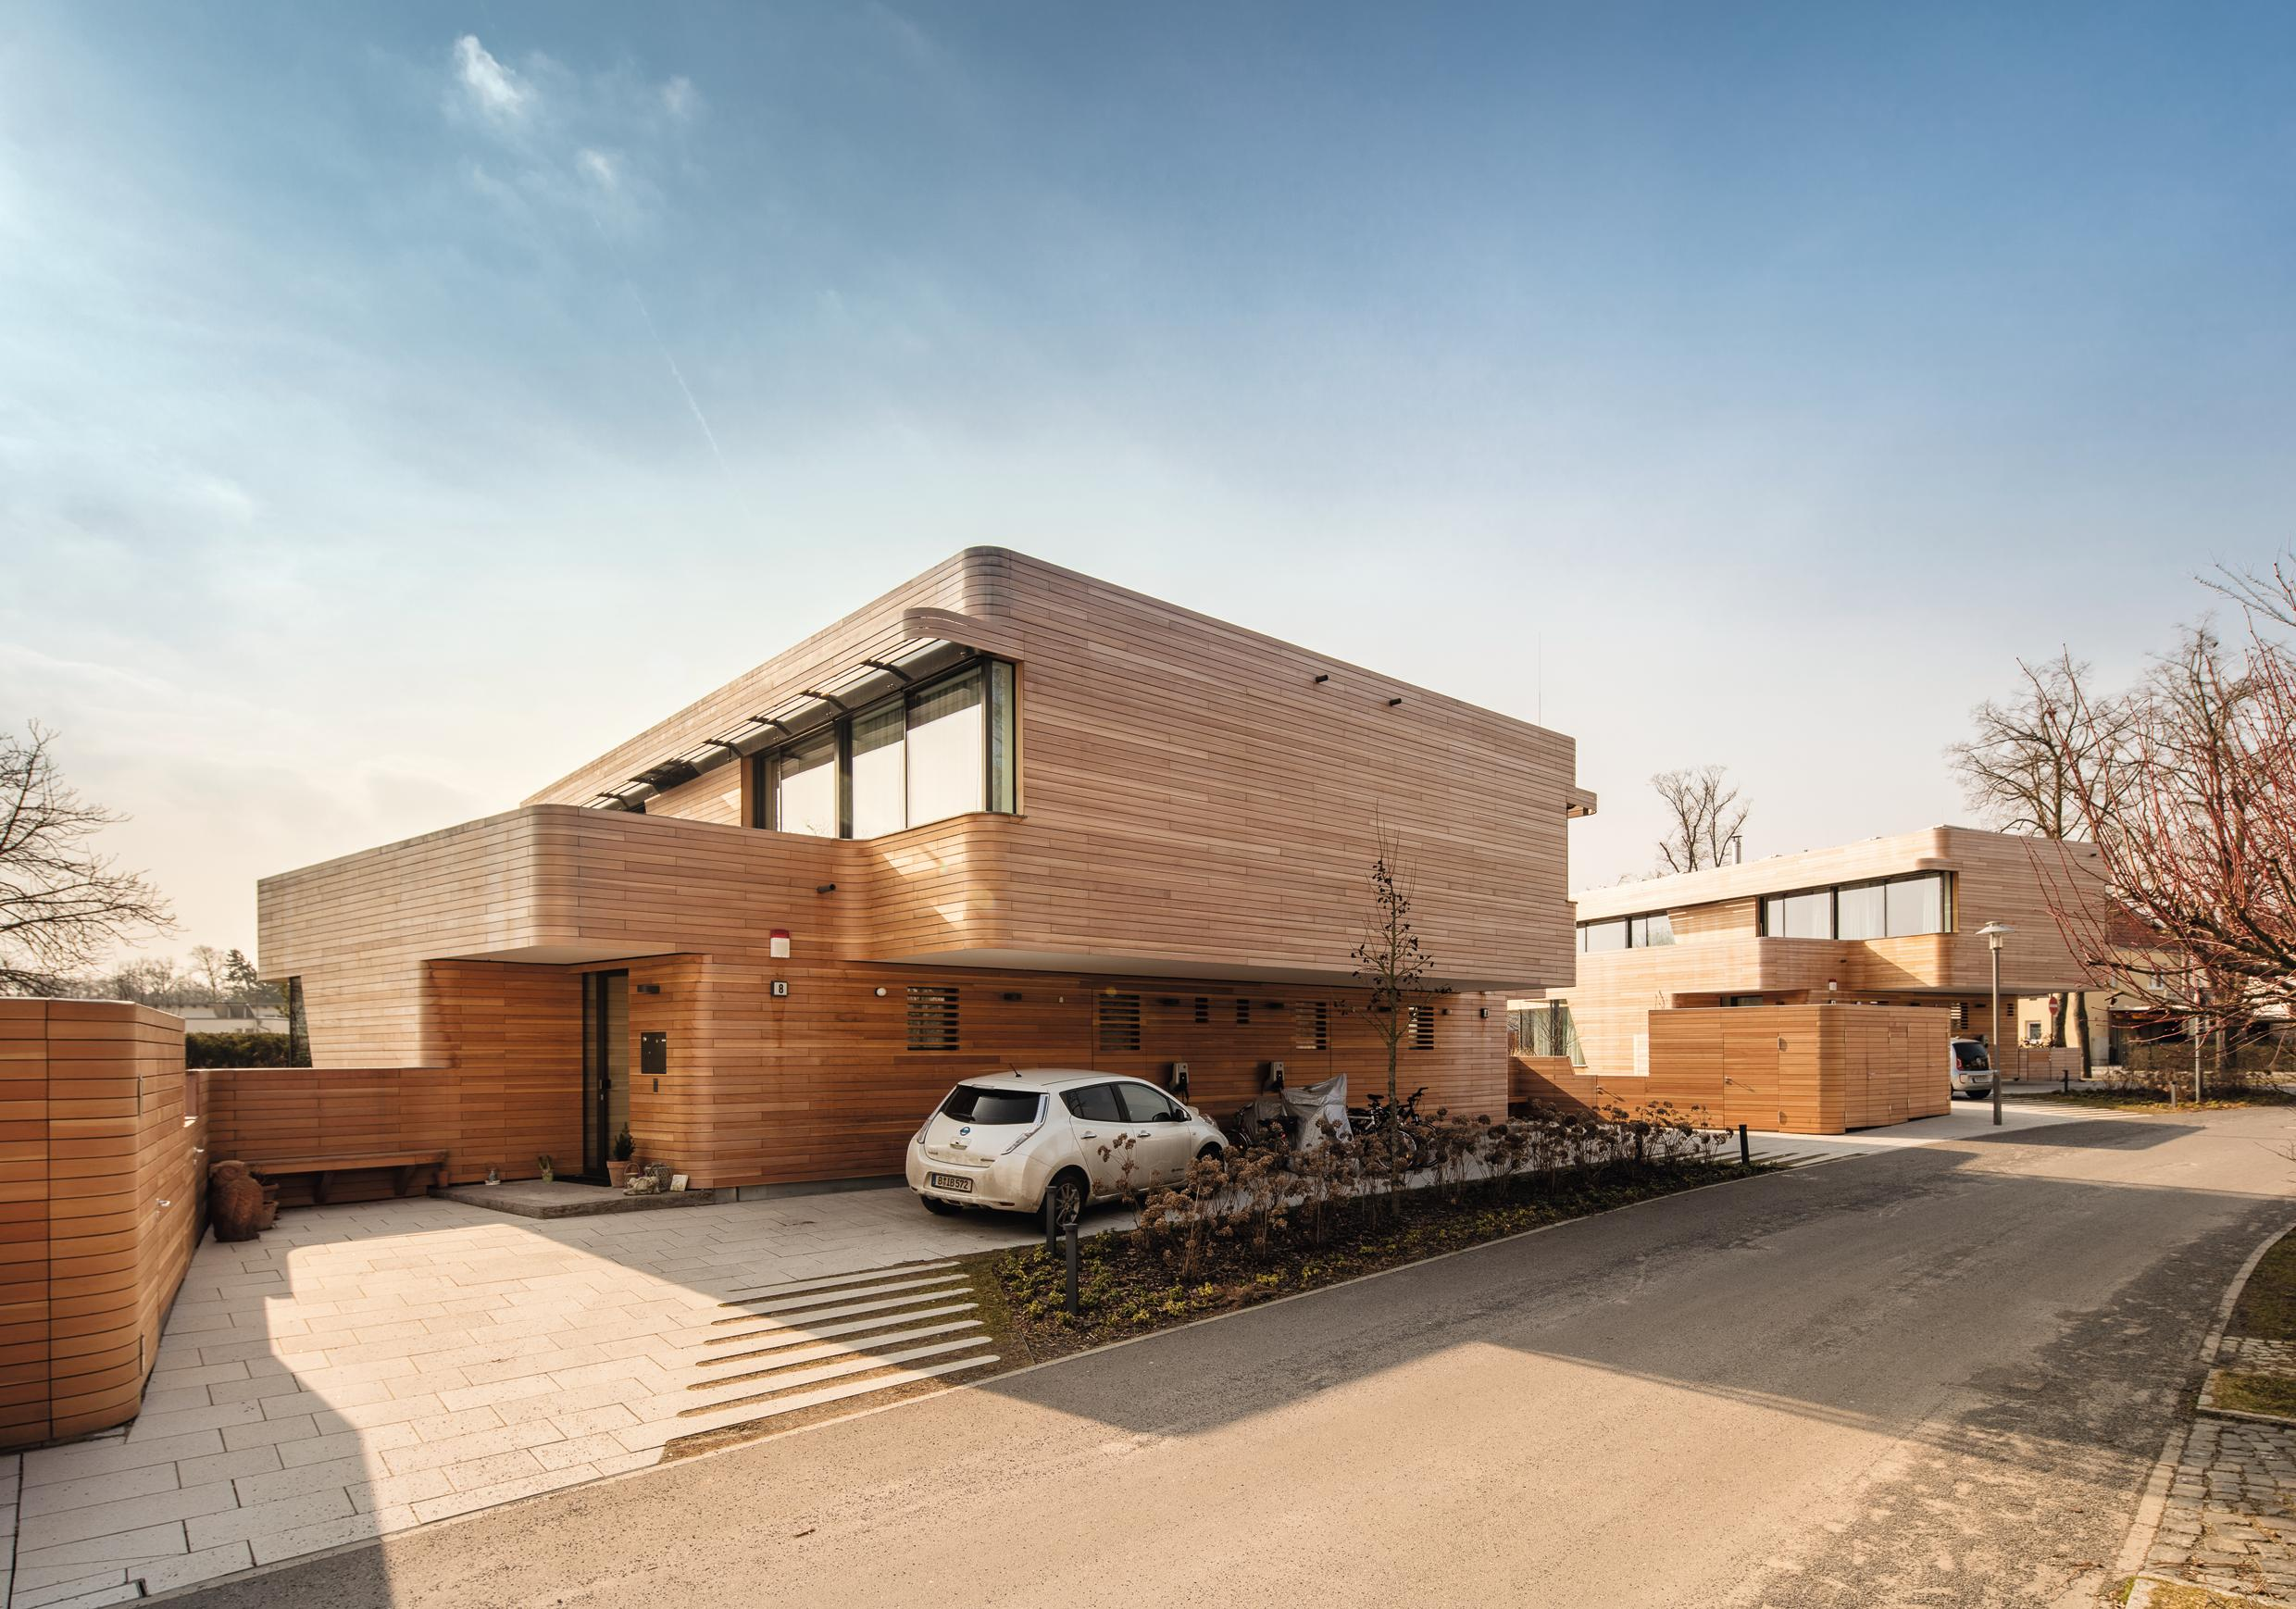 Holistic living: GRAFT designed three plus-energy houses made of sustainable and healthy materials that are completely re-usable and recyclable. The houses generate their own energy and the surplus is used to power an electric vehicle integrated into the technical systems of the house.